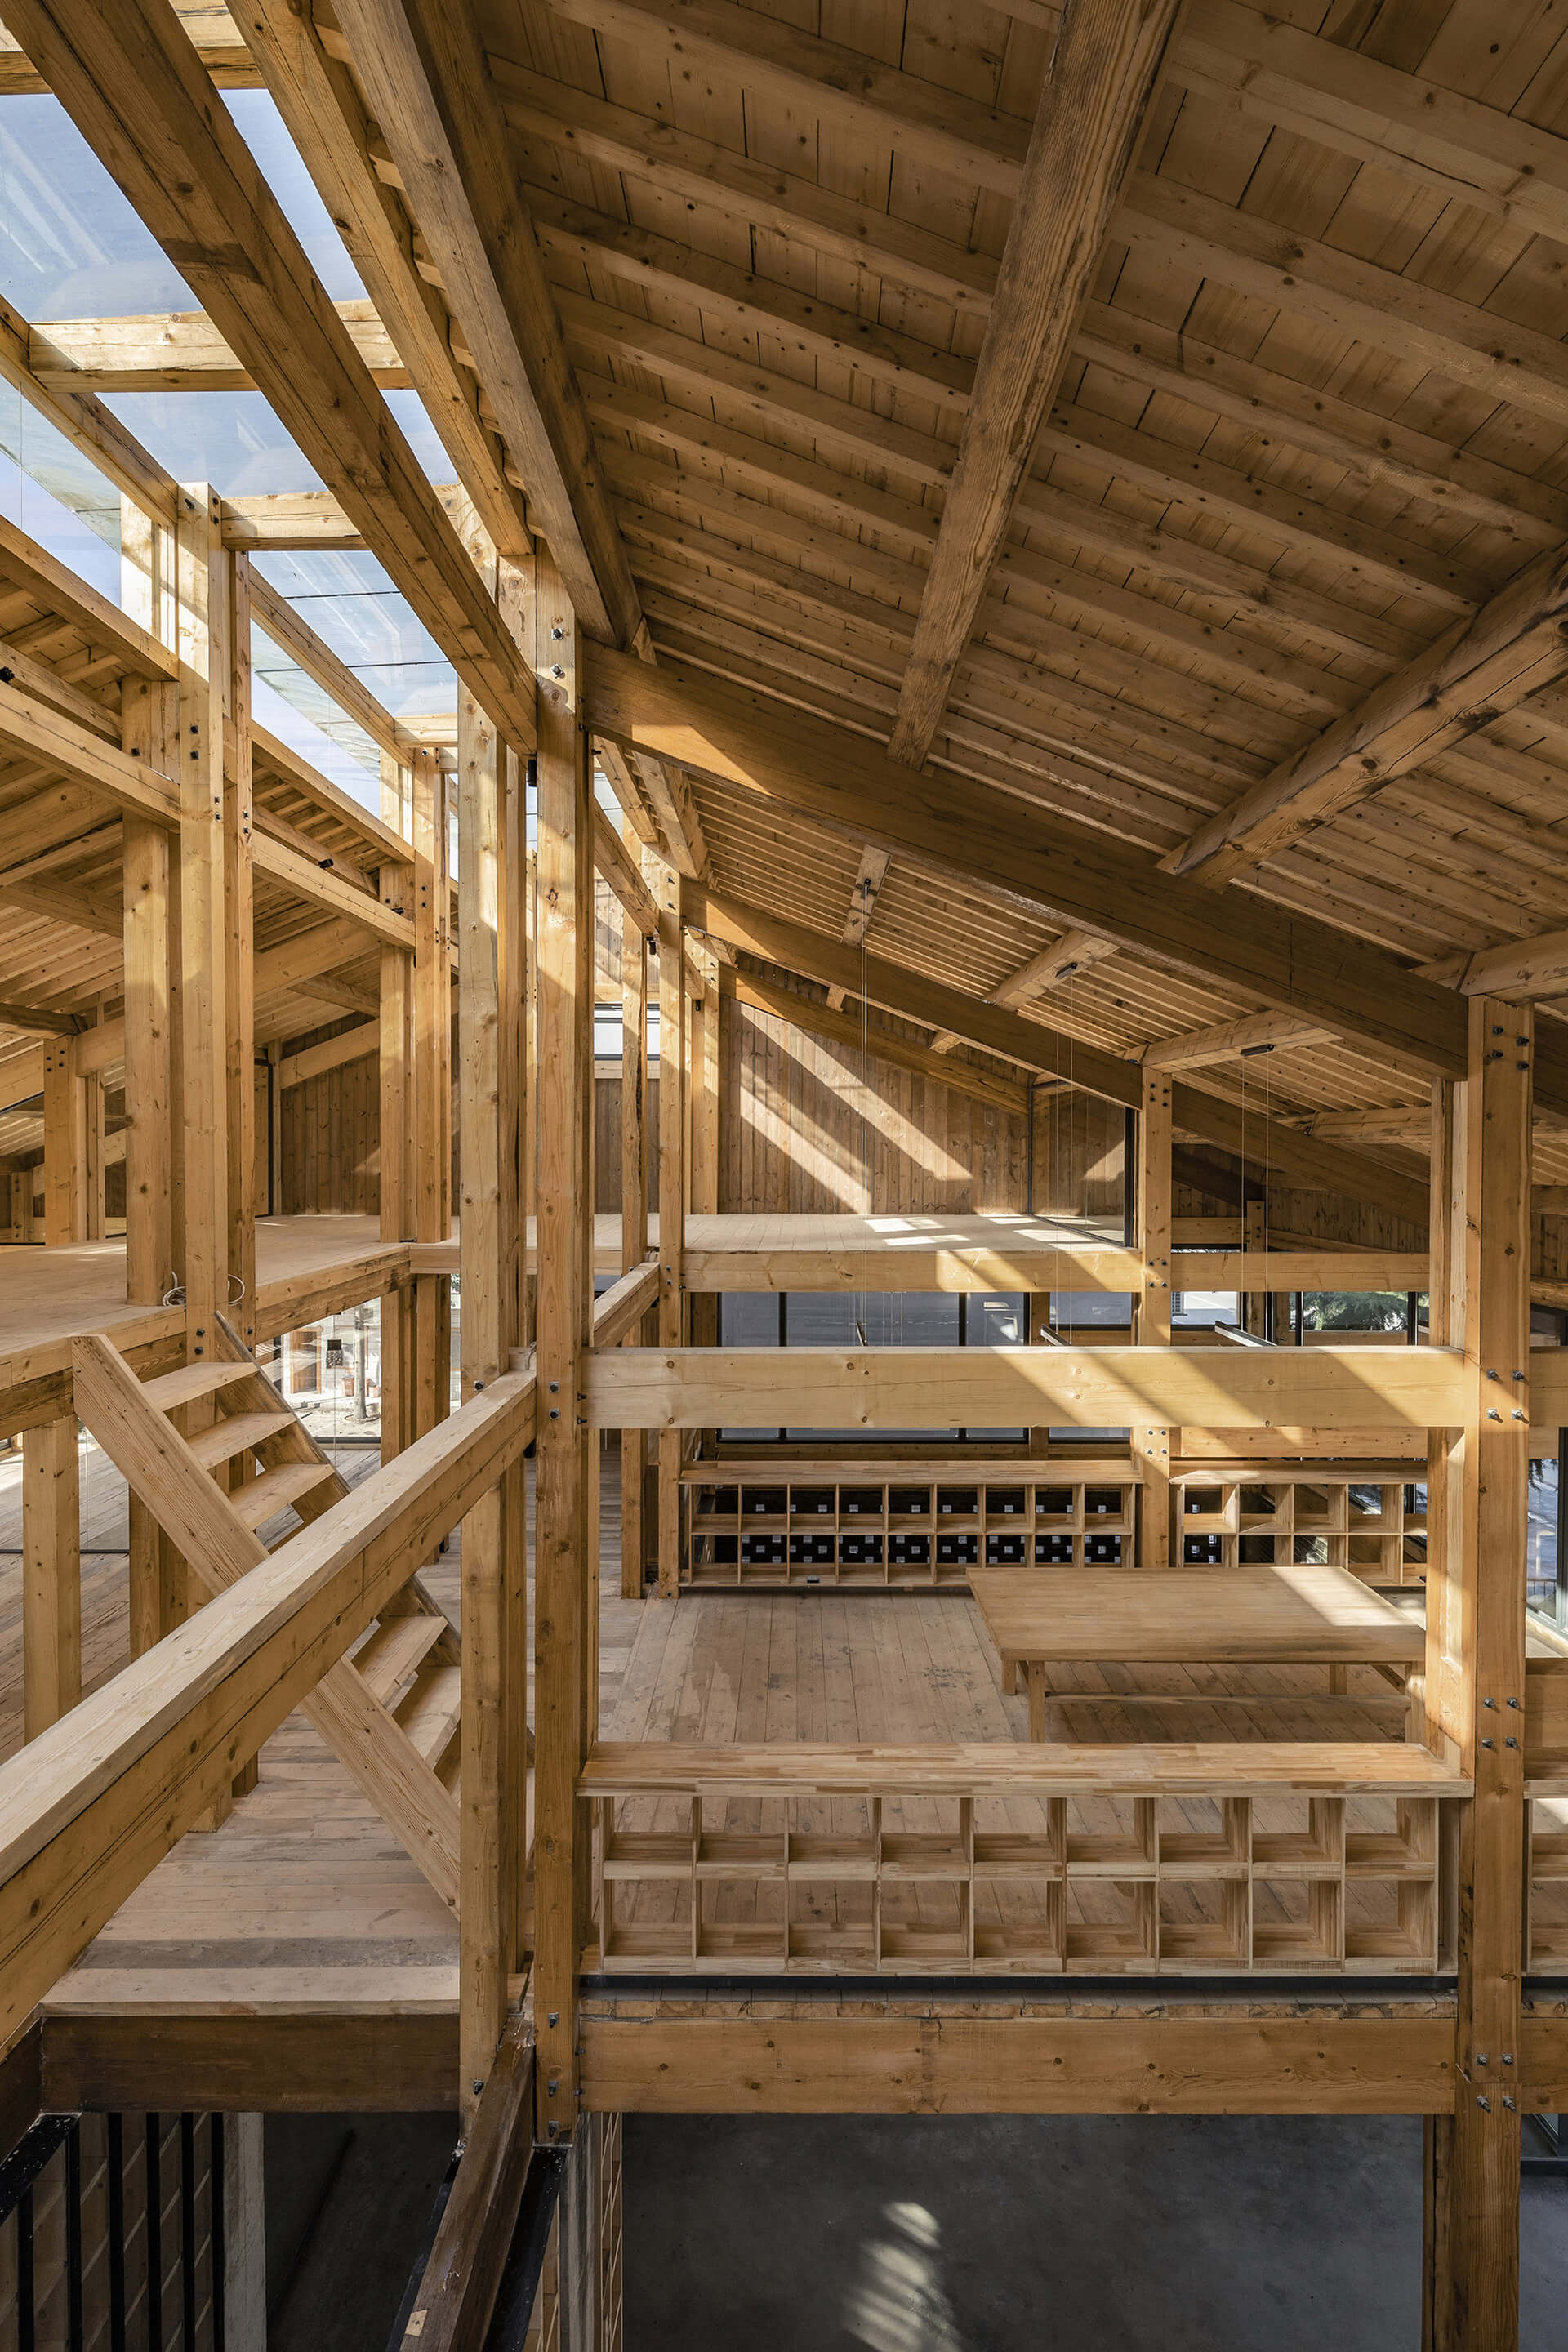 Prefabricated timber framework makes up the upper storey | Party and Public Service Center of Yuanheguan Village by LUO Studio | STIRworld